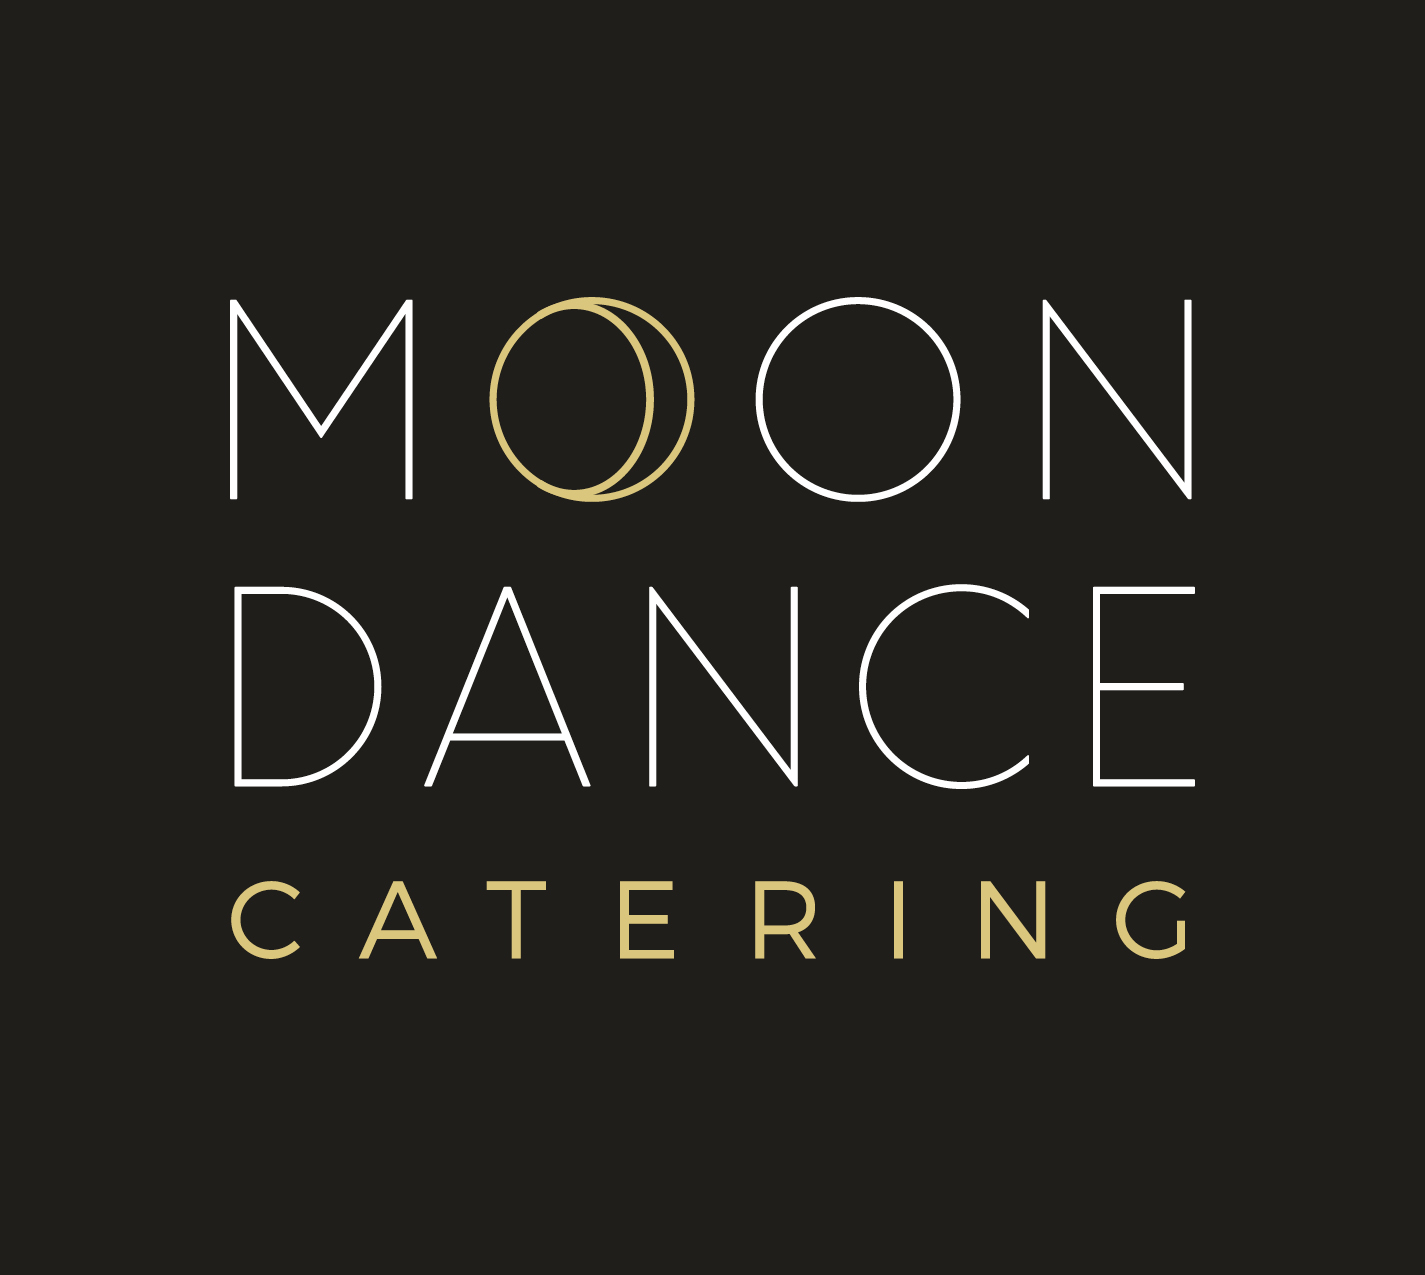 Moondance Catering